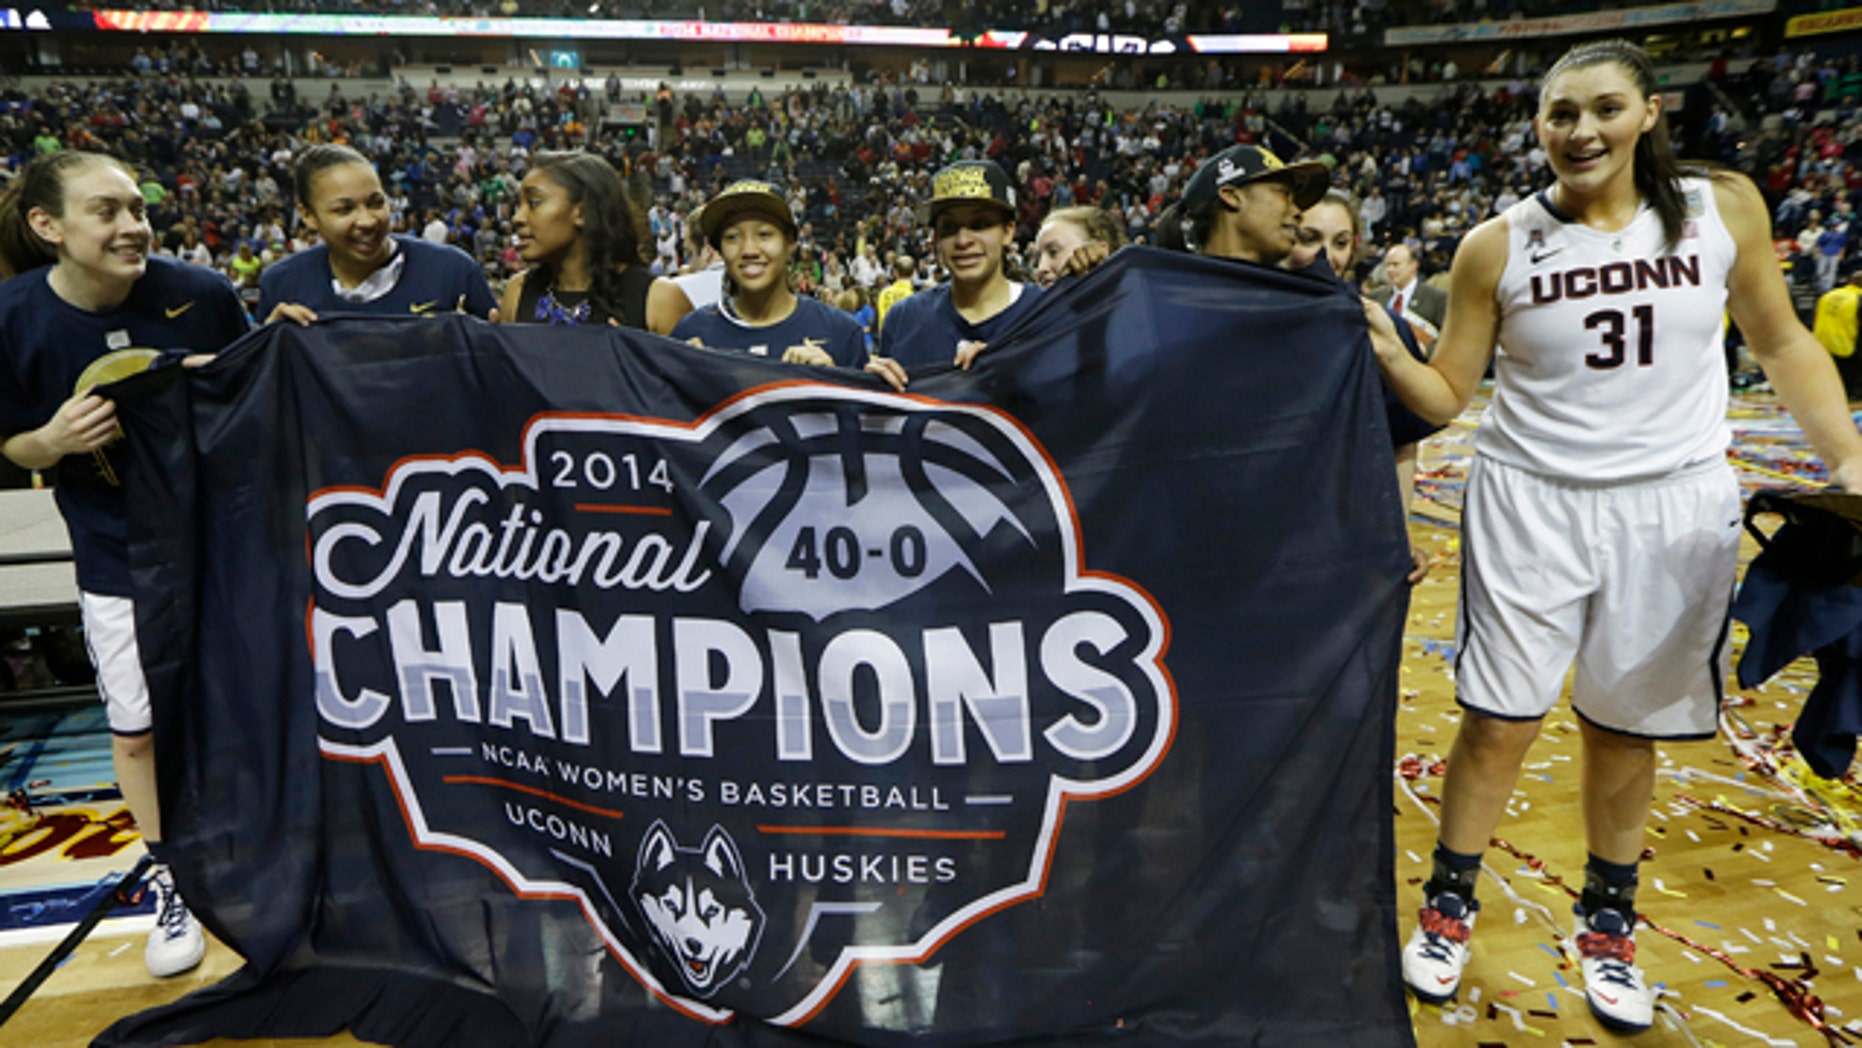 April 8, 2014: The Connecticut team celebrate their win over Notre Dame in  the championship game in the Final Four of the NCAA women's college basketball tournament in Nashville, Tenn. (AP Photo/Mark Humphrey)